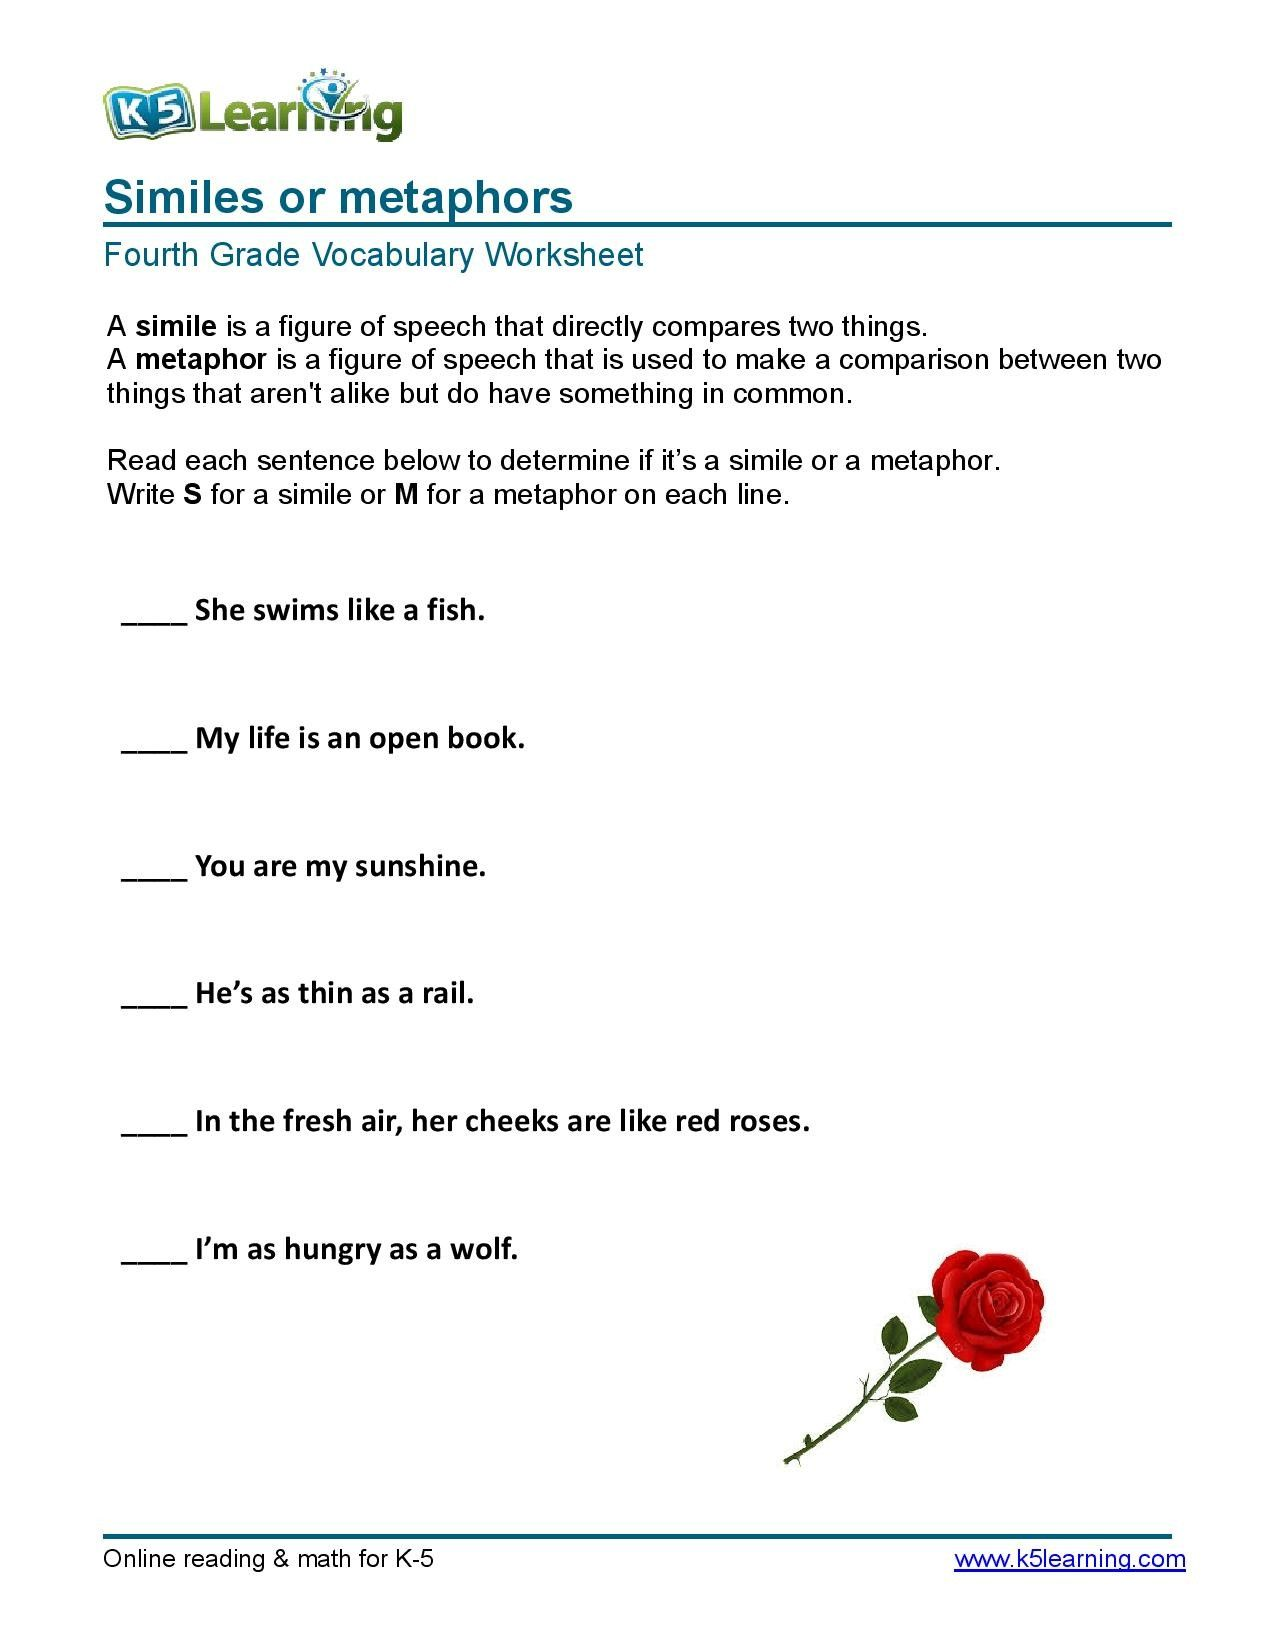 K5 Learning English Grammar Worksheets Grade 4